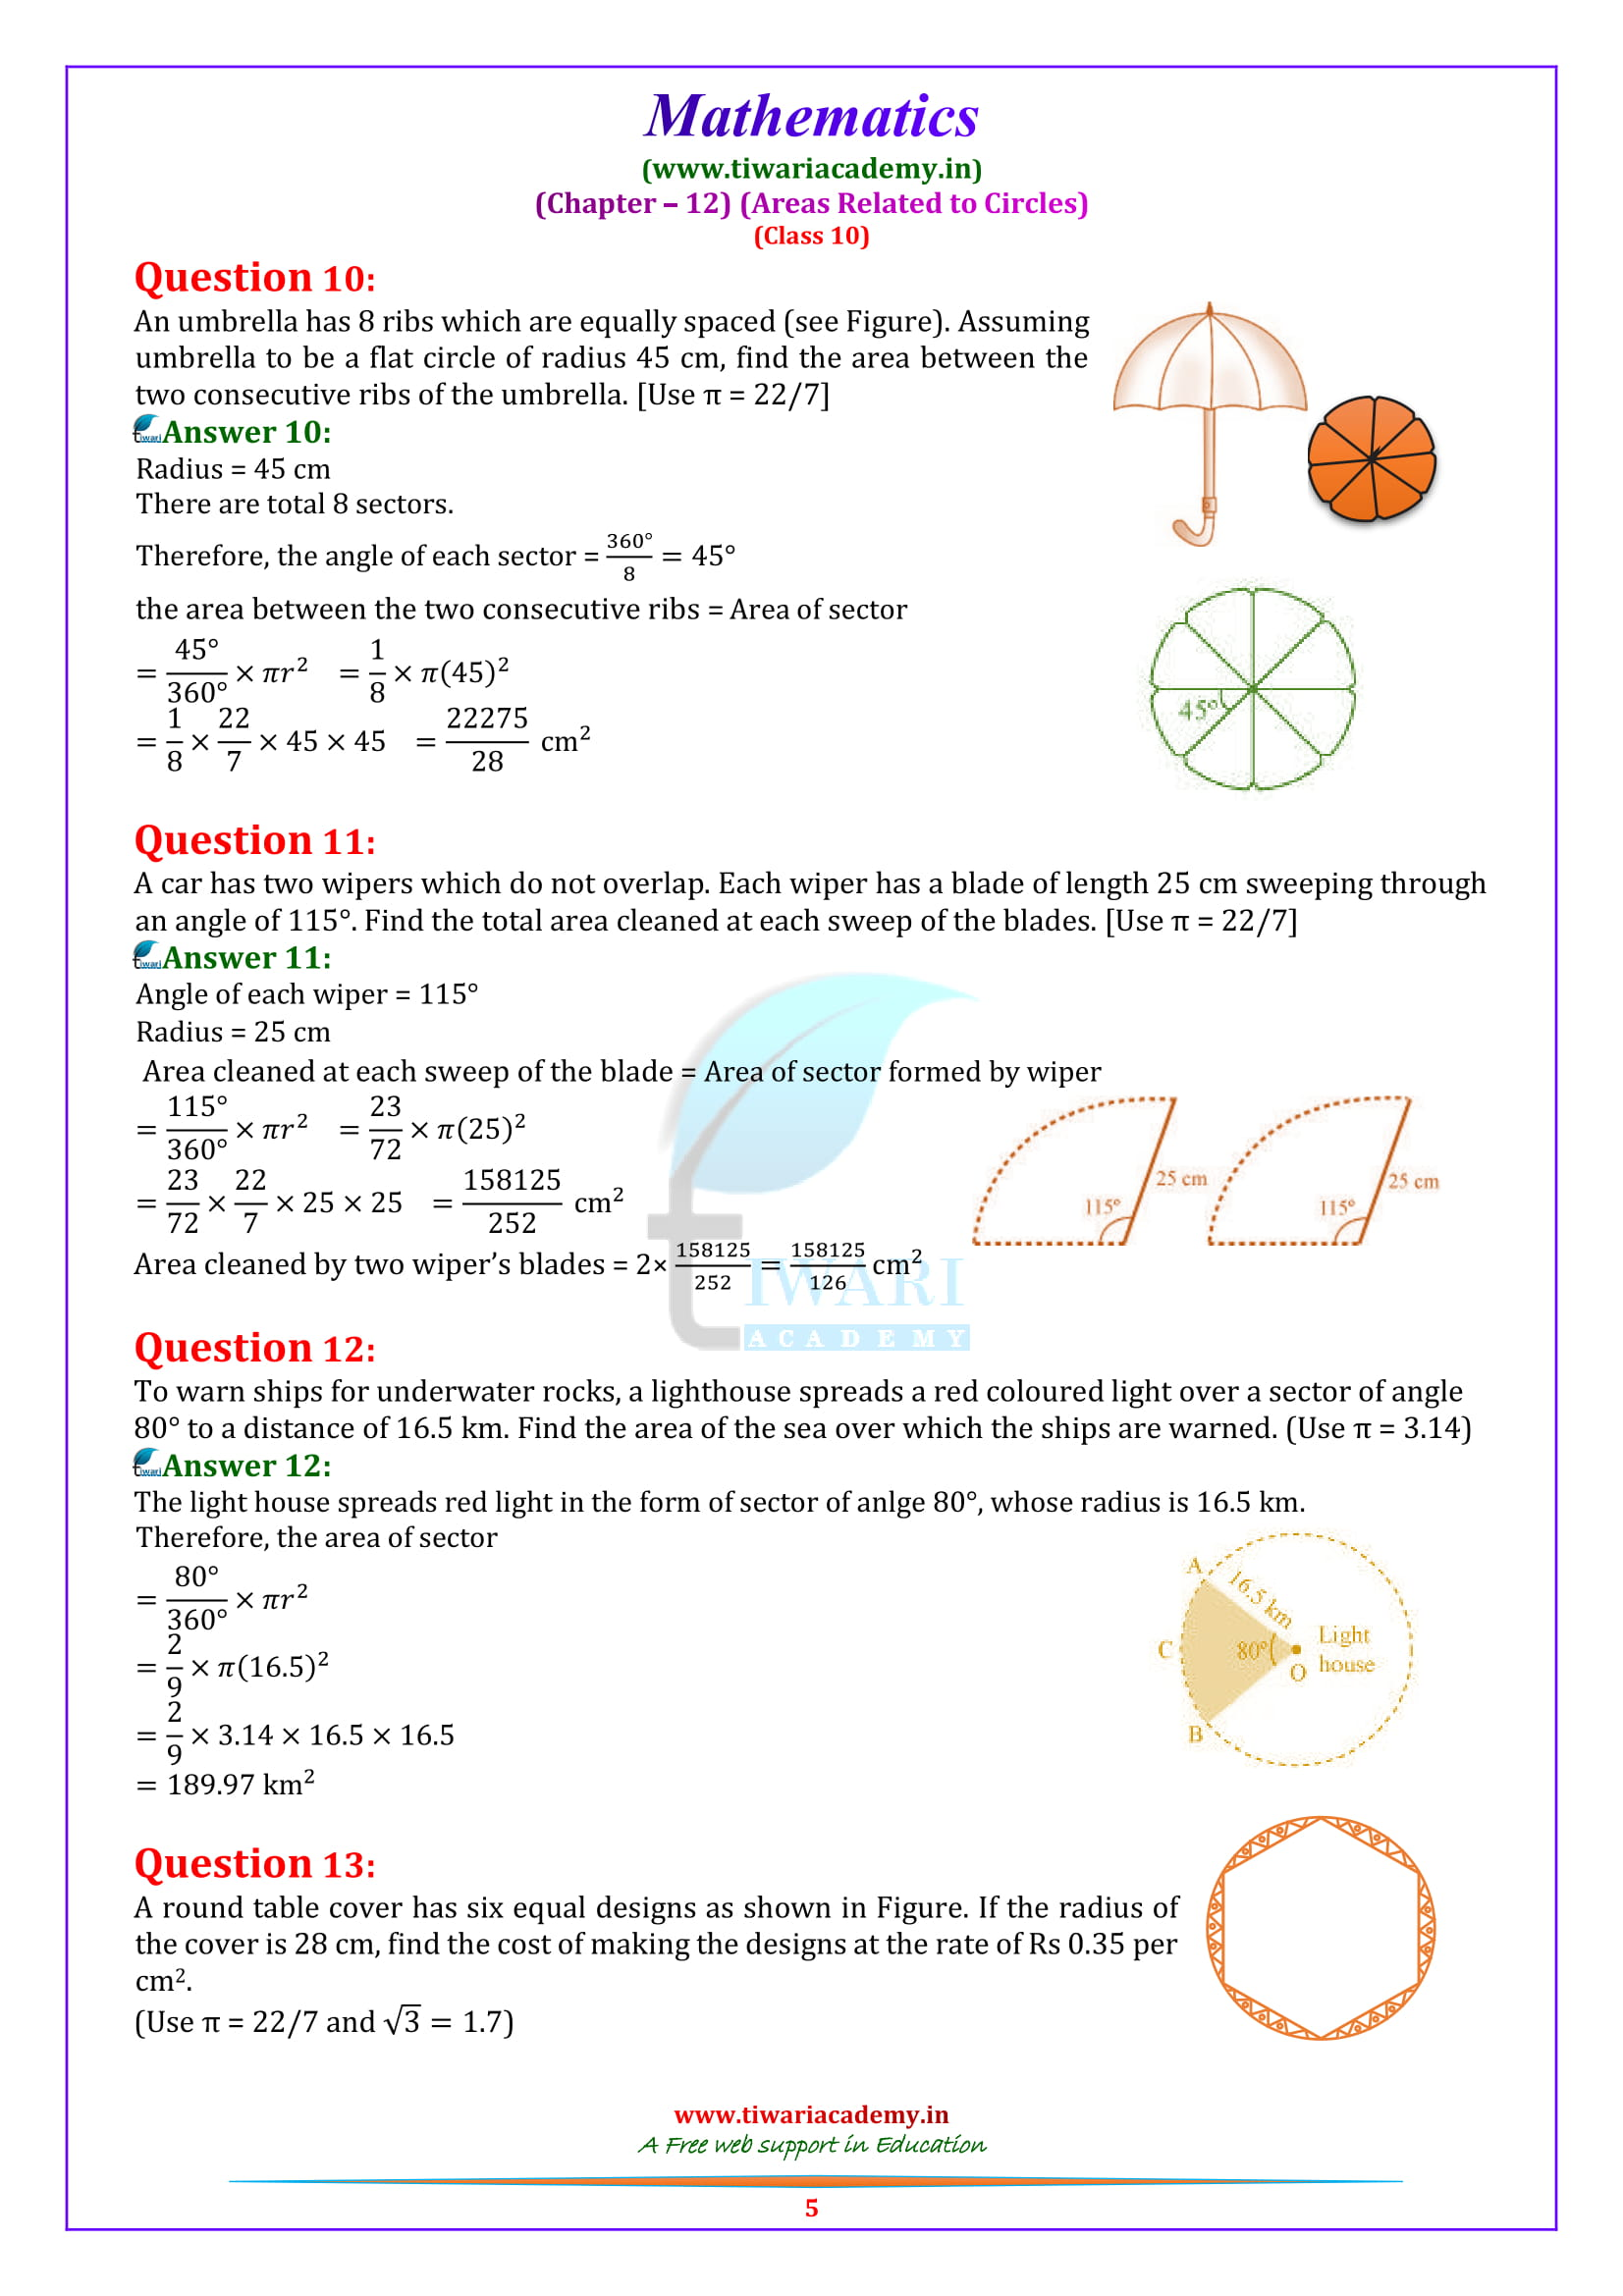 NCERT Solutions for class 10 Maths Exercise 12.2 for up and mp board